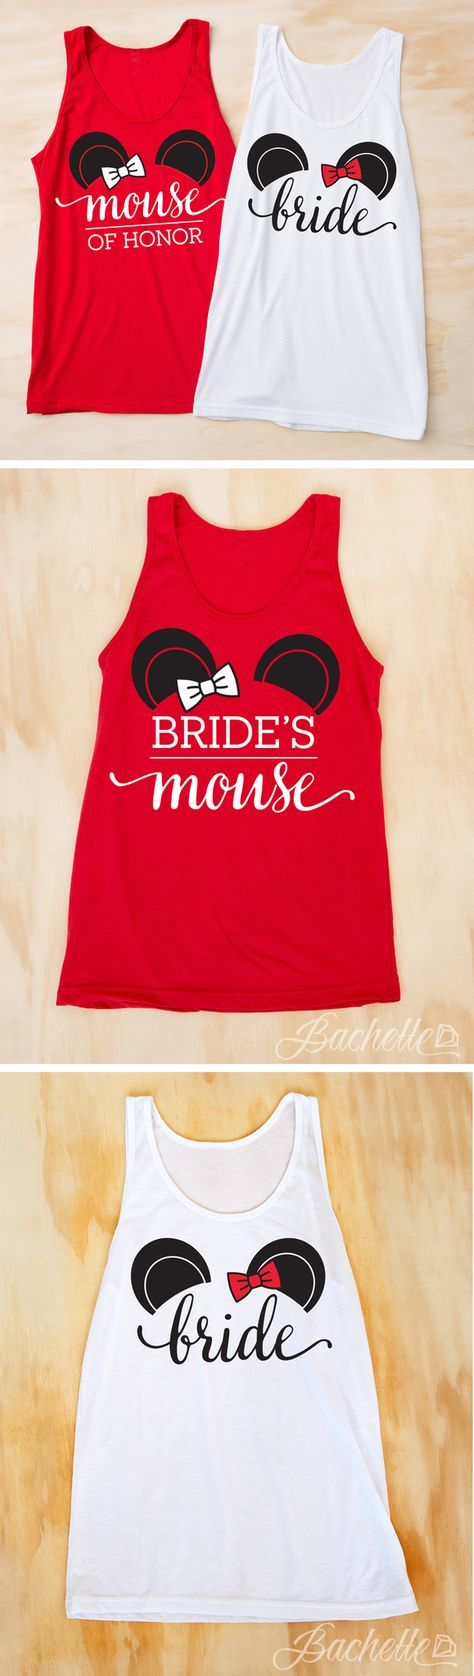 """Adorable """"Bride's Mouse"""" and """"Mouse of Honor"""" mouse ears bachelorette party shirts! SO CUTE and perfect for a bachelorette party!"""